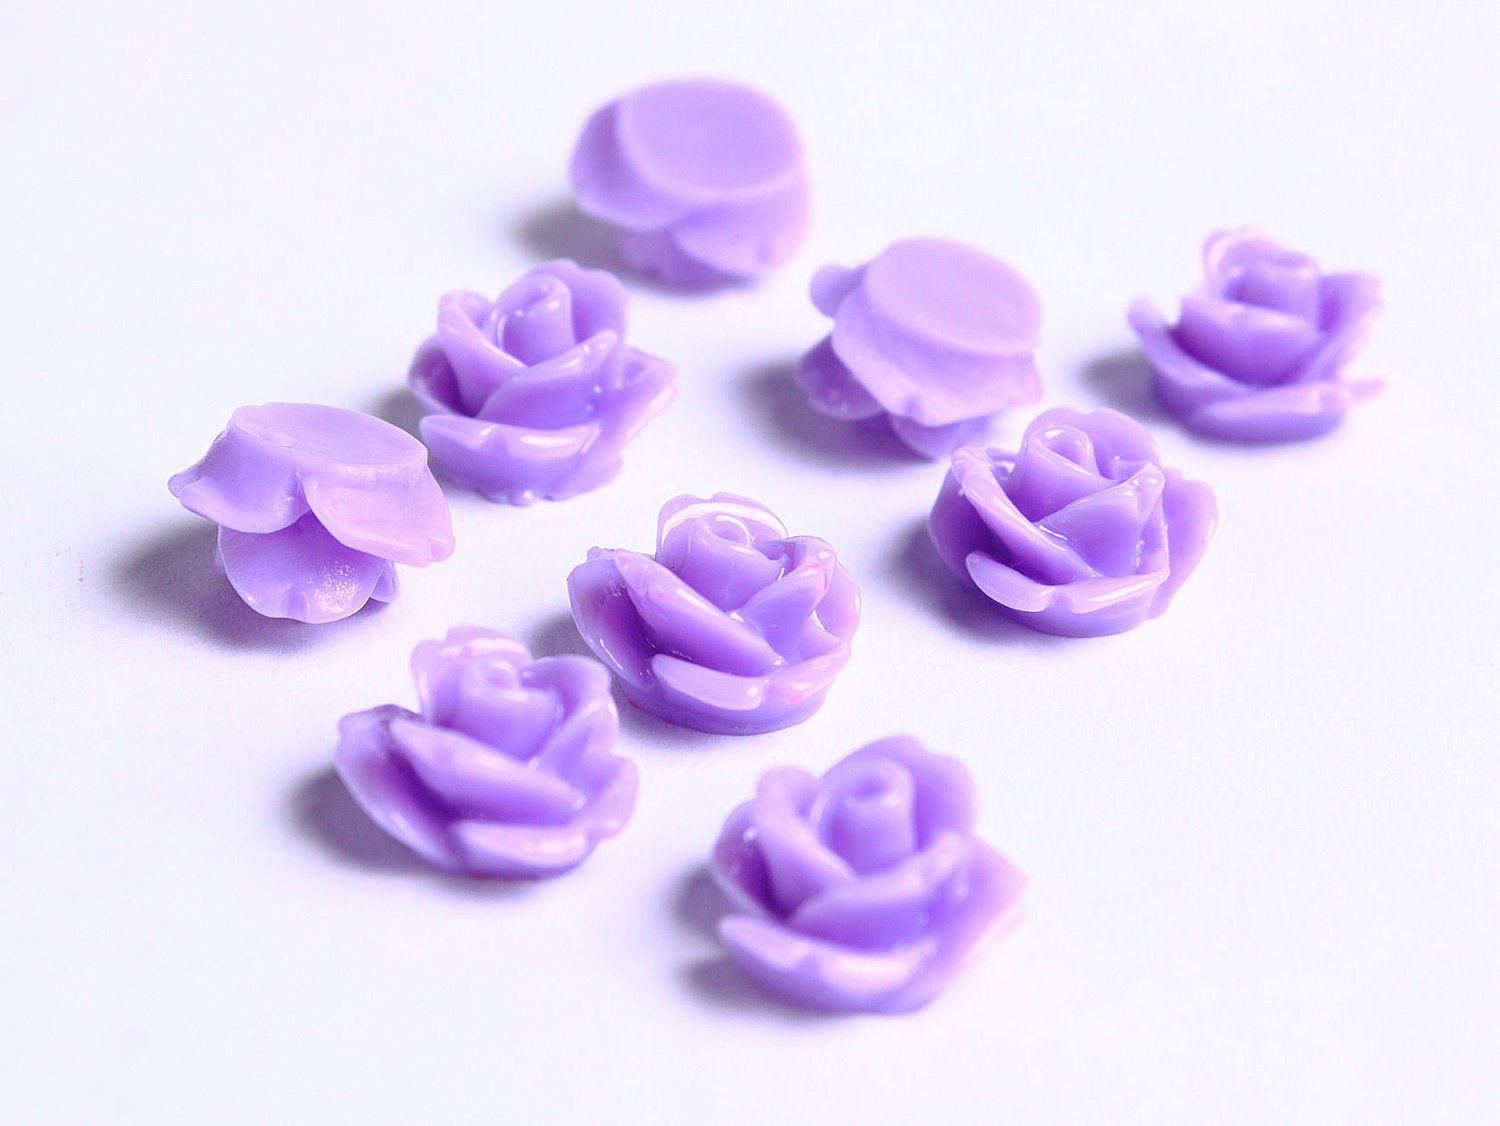 10mm Purple rosebud cabochons - 10mm rose cabochons - 10mm flower cabochons - 10 pieces (085)